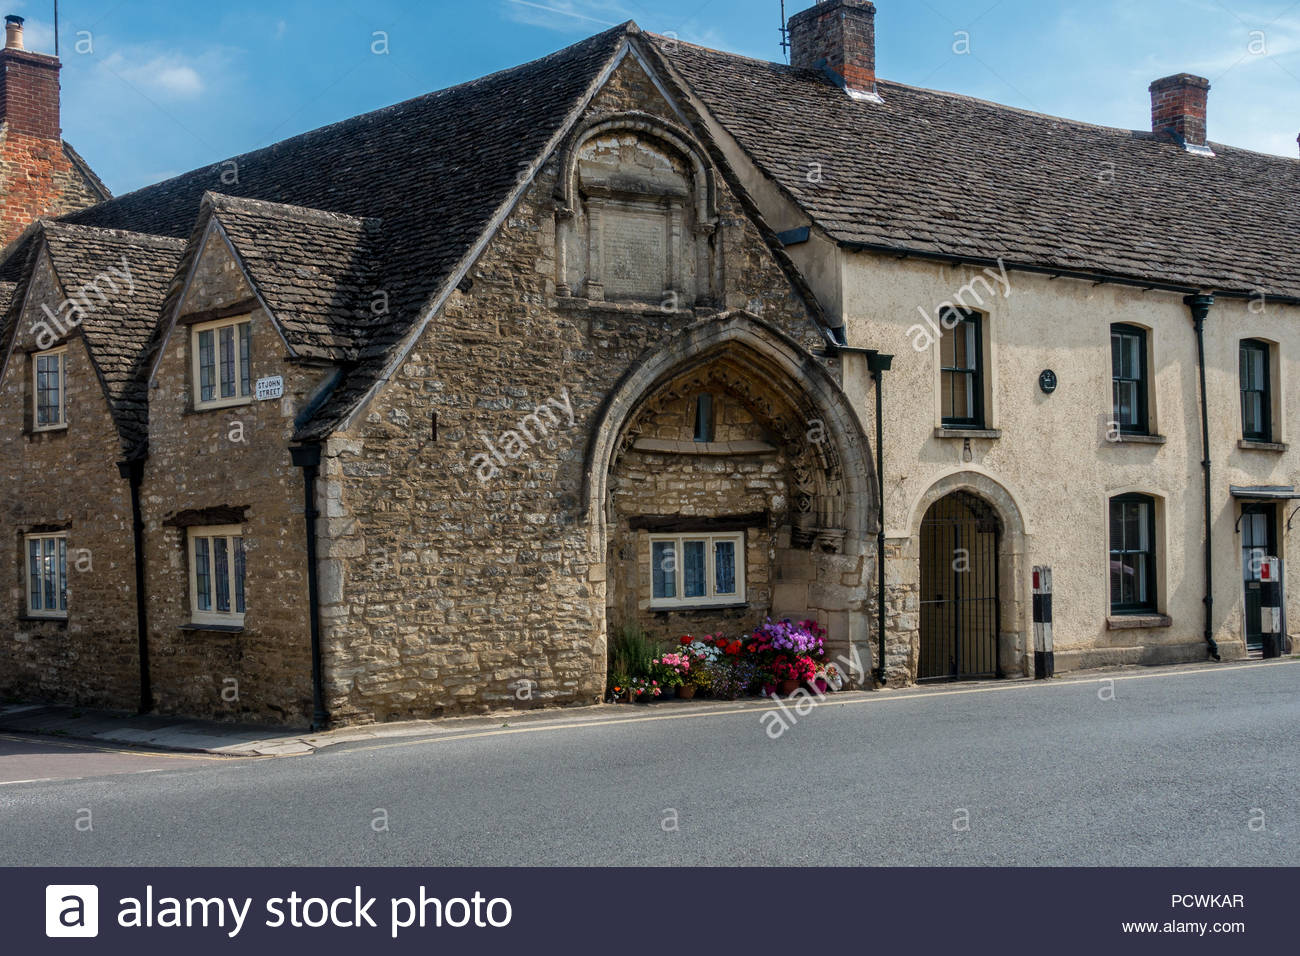 The exterior of the 13th century Hospital of St. John the Baptist, Malmesbury, Wiltshire. - Stock Image